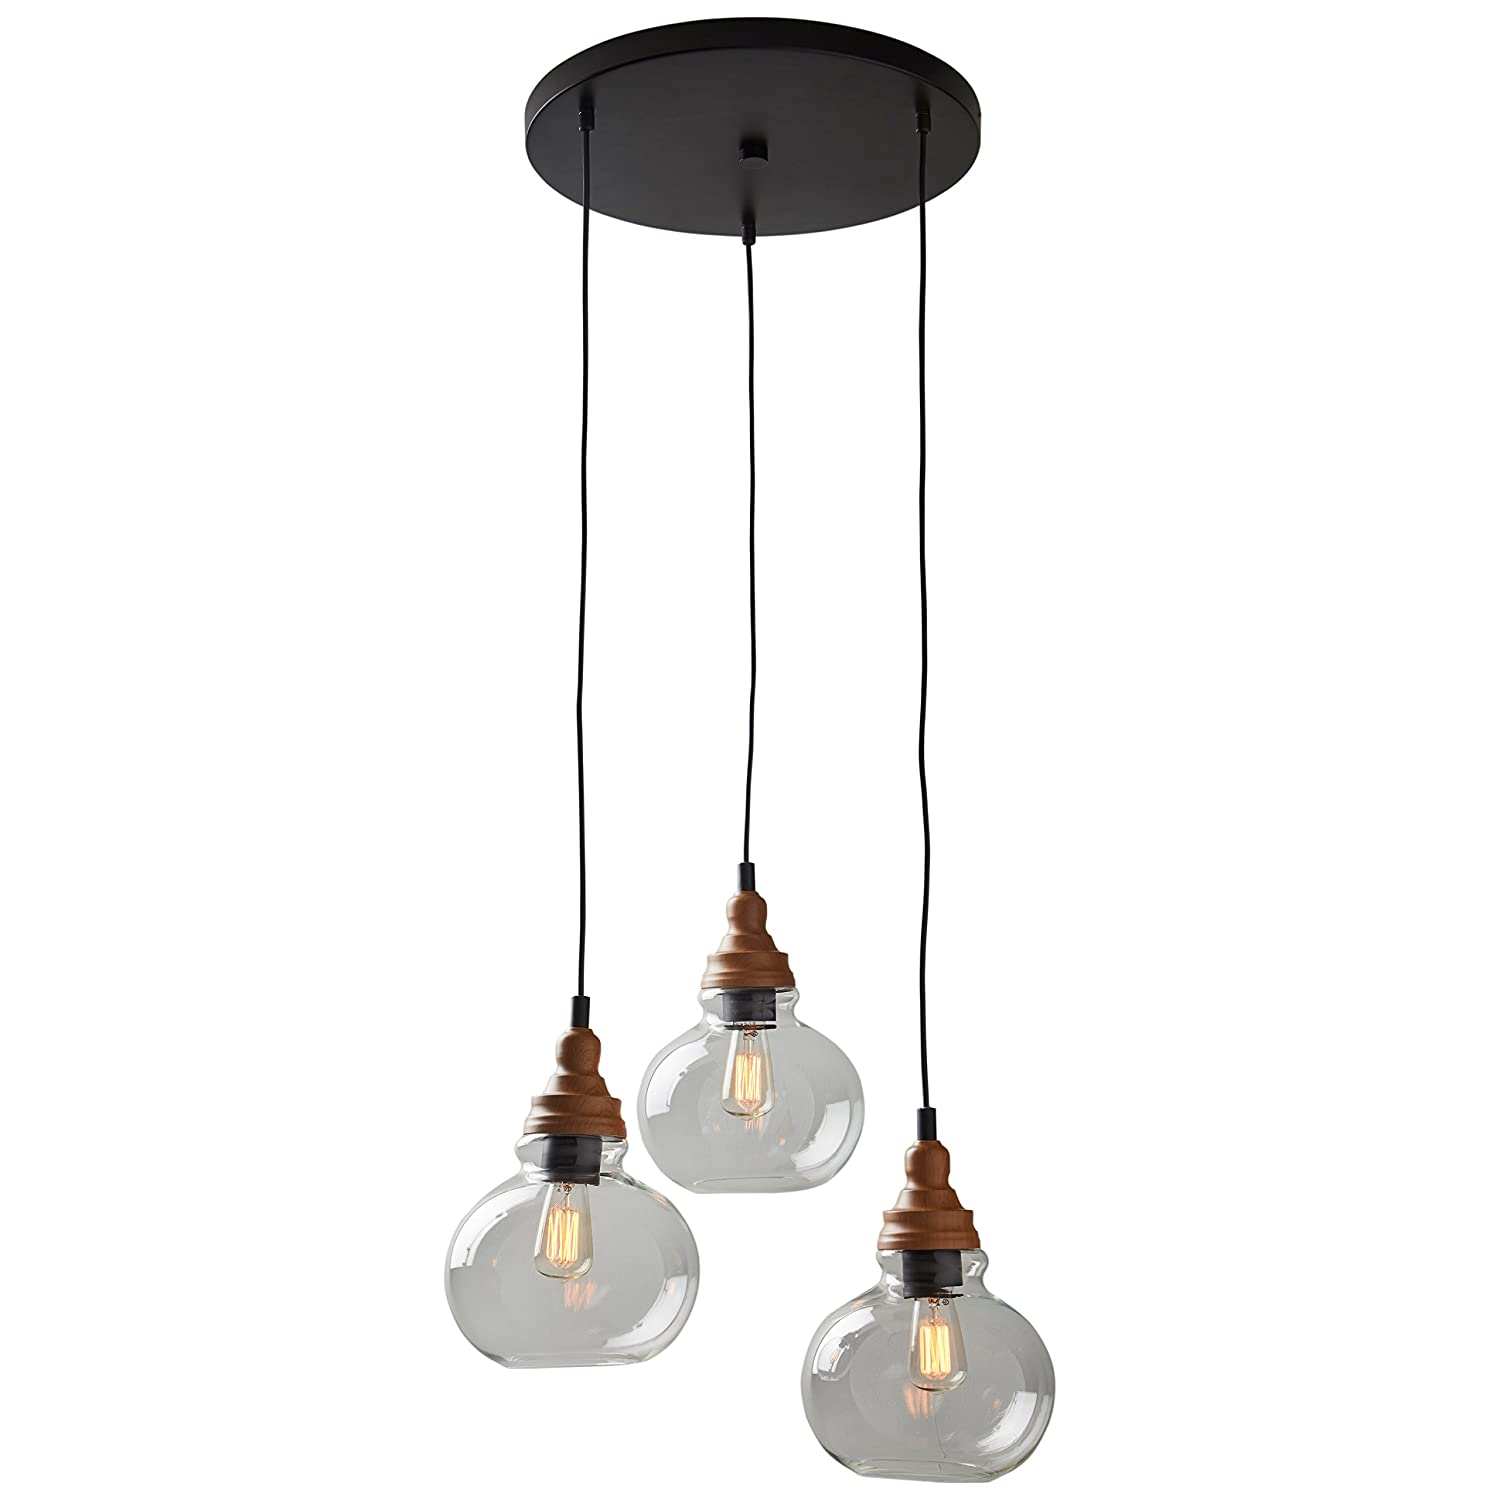 Rivet Glass 3 Light Pendant With Bulb, 1425 60H, Brown And Black